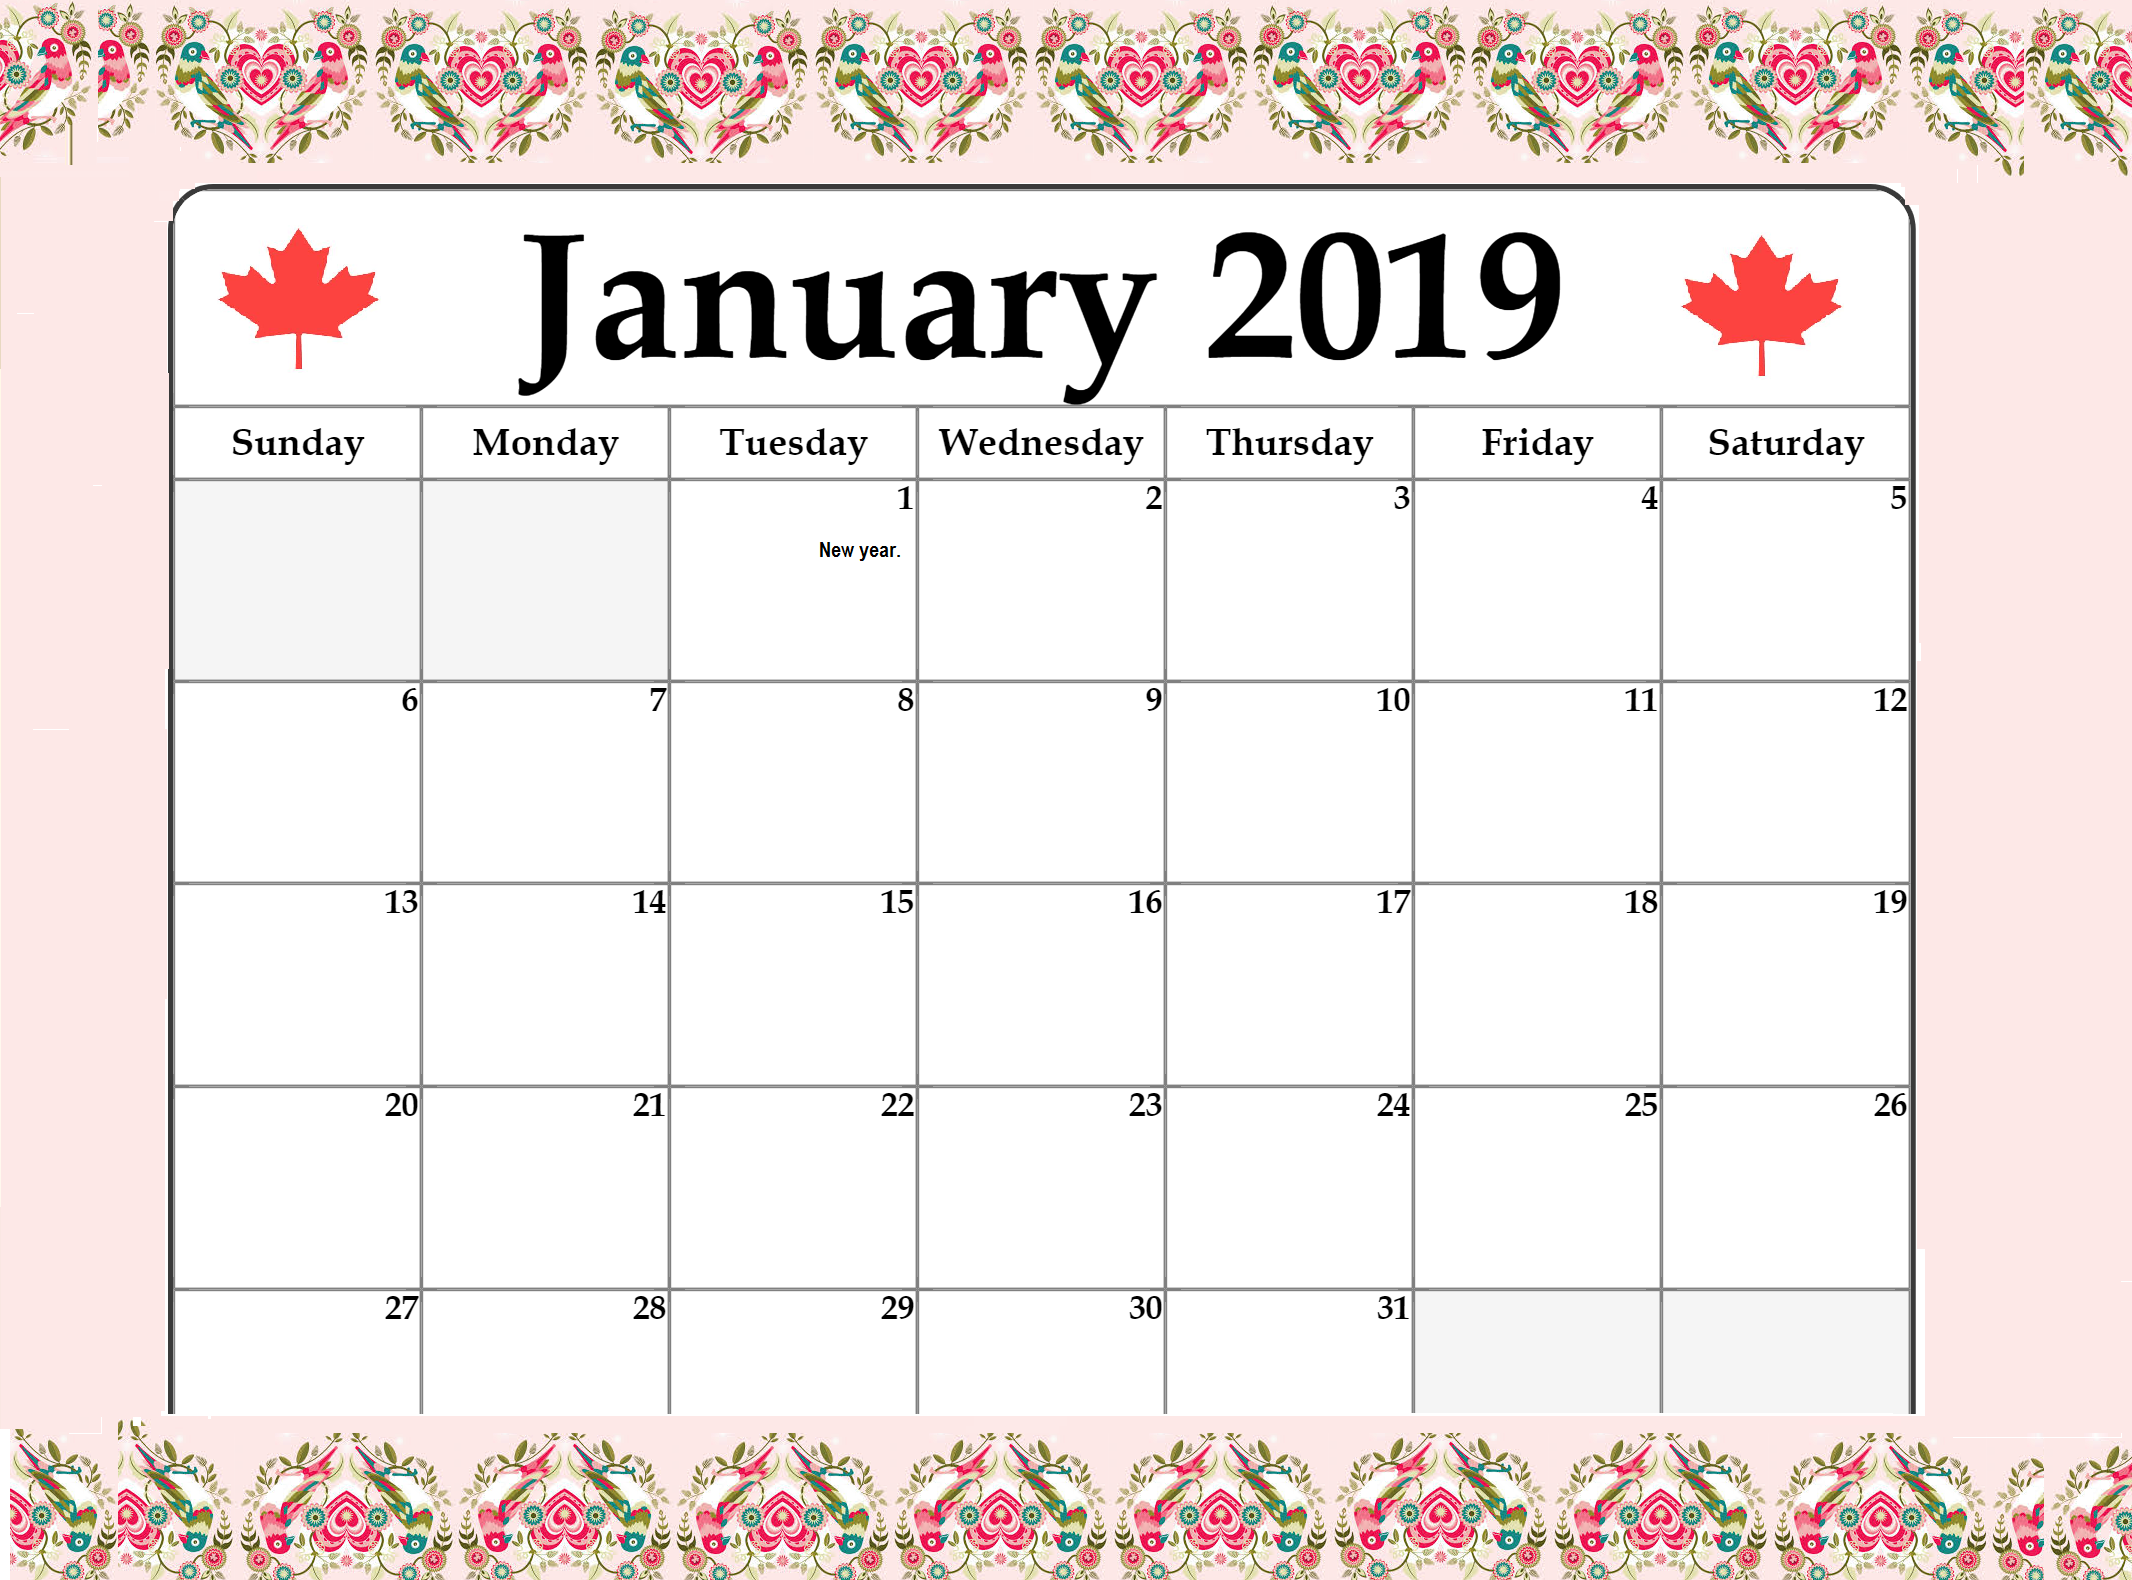 January 2019 Calendar Canada With Holidays